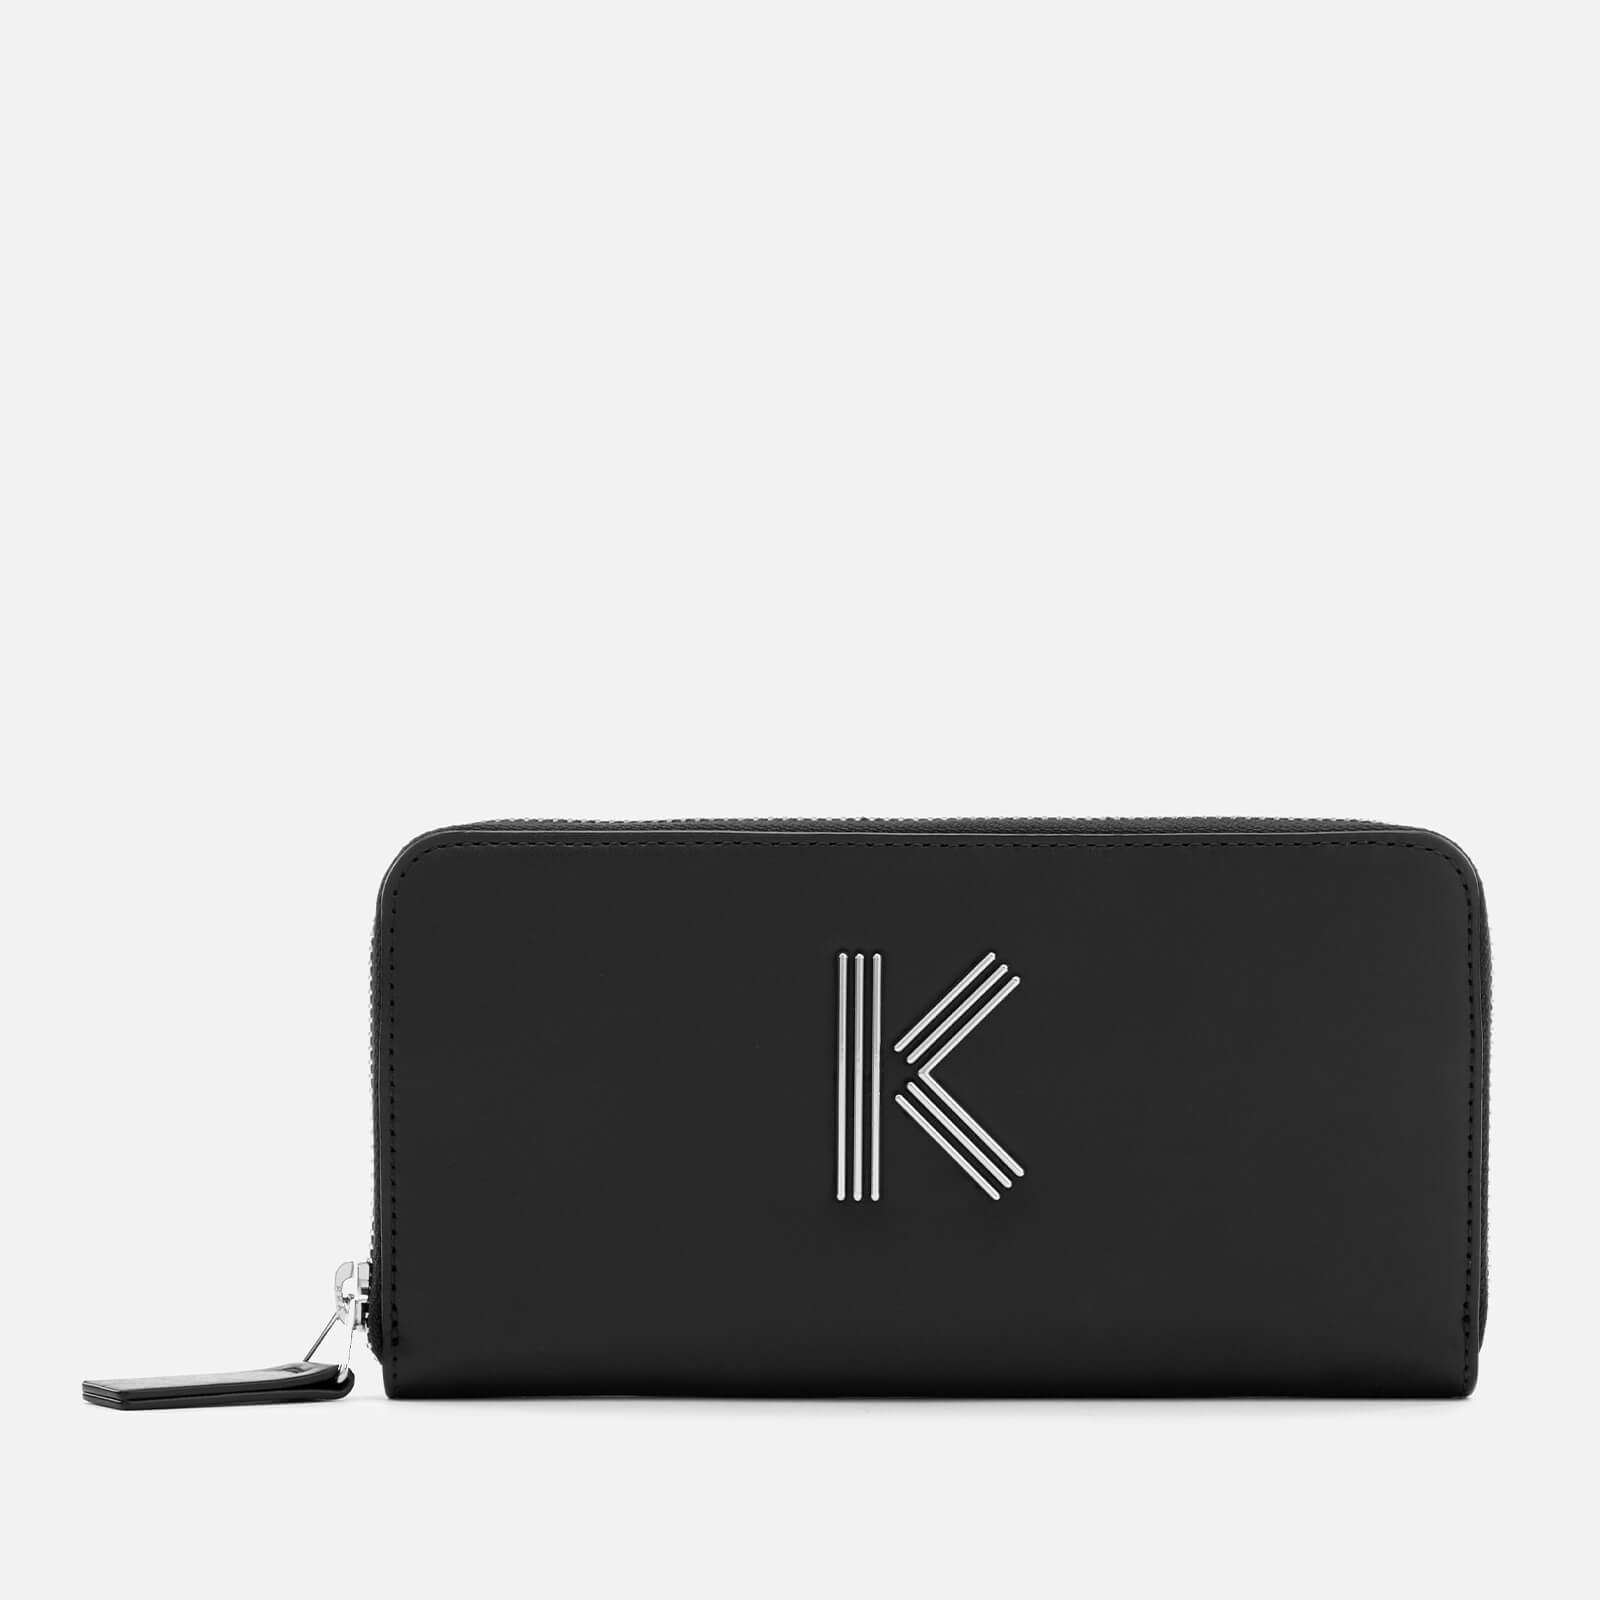 076c3e706575 KENZO Women s Zip Continental Wallet - Black - Free UK Delivery over £50